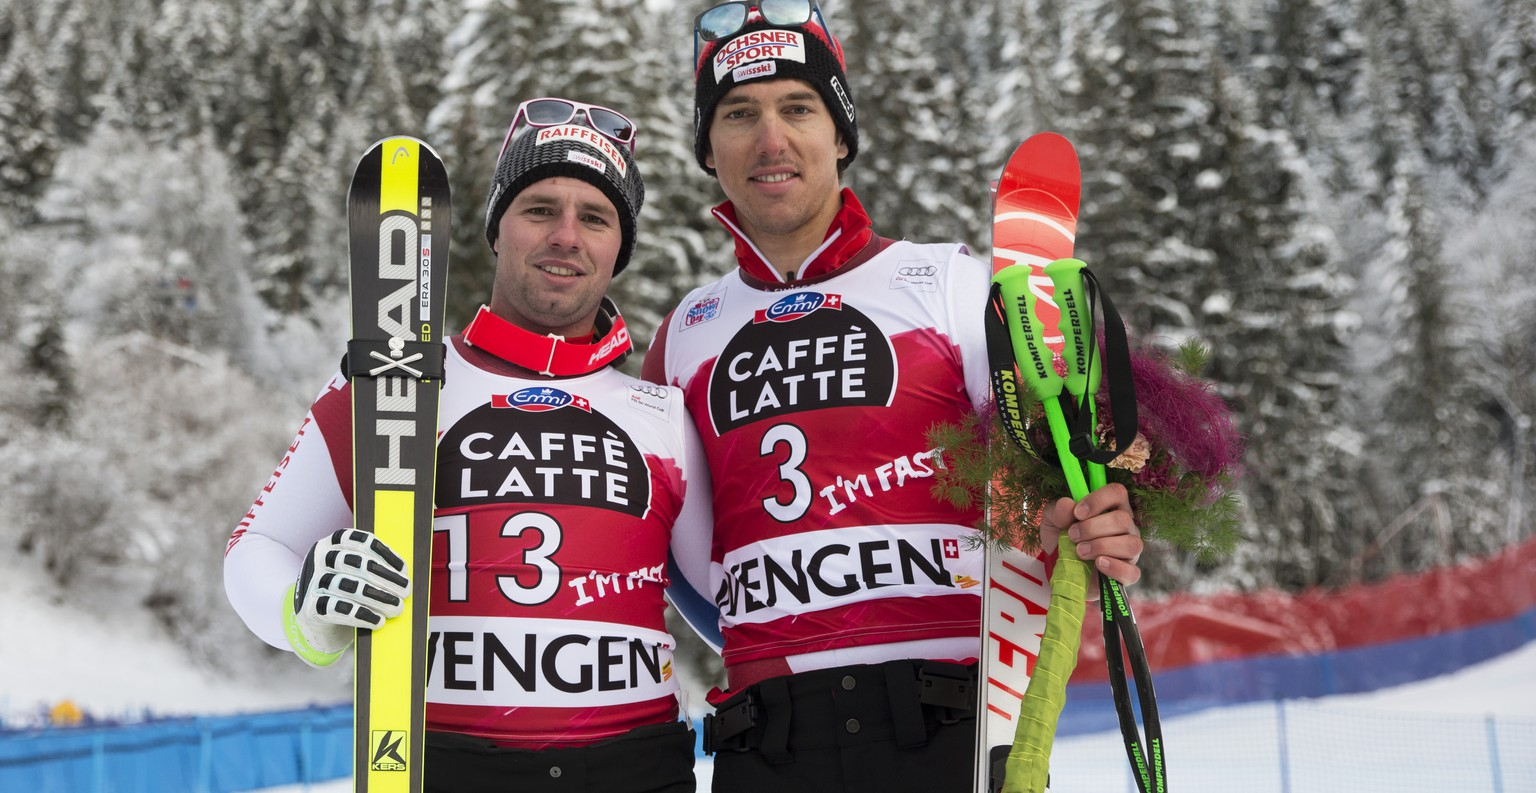 Switzerland's Beat Feuz (second place, left) and teammate Carlo Janka (third place, right) pose after the men's downhill race at the FIS Alpine Ski World Cup at the Lauberhorn, in Wengen, Switzerland, Sunday, January 18, 2015. (KEYSTONE/Peter Klaunzer)